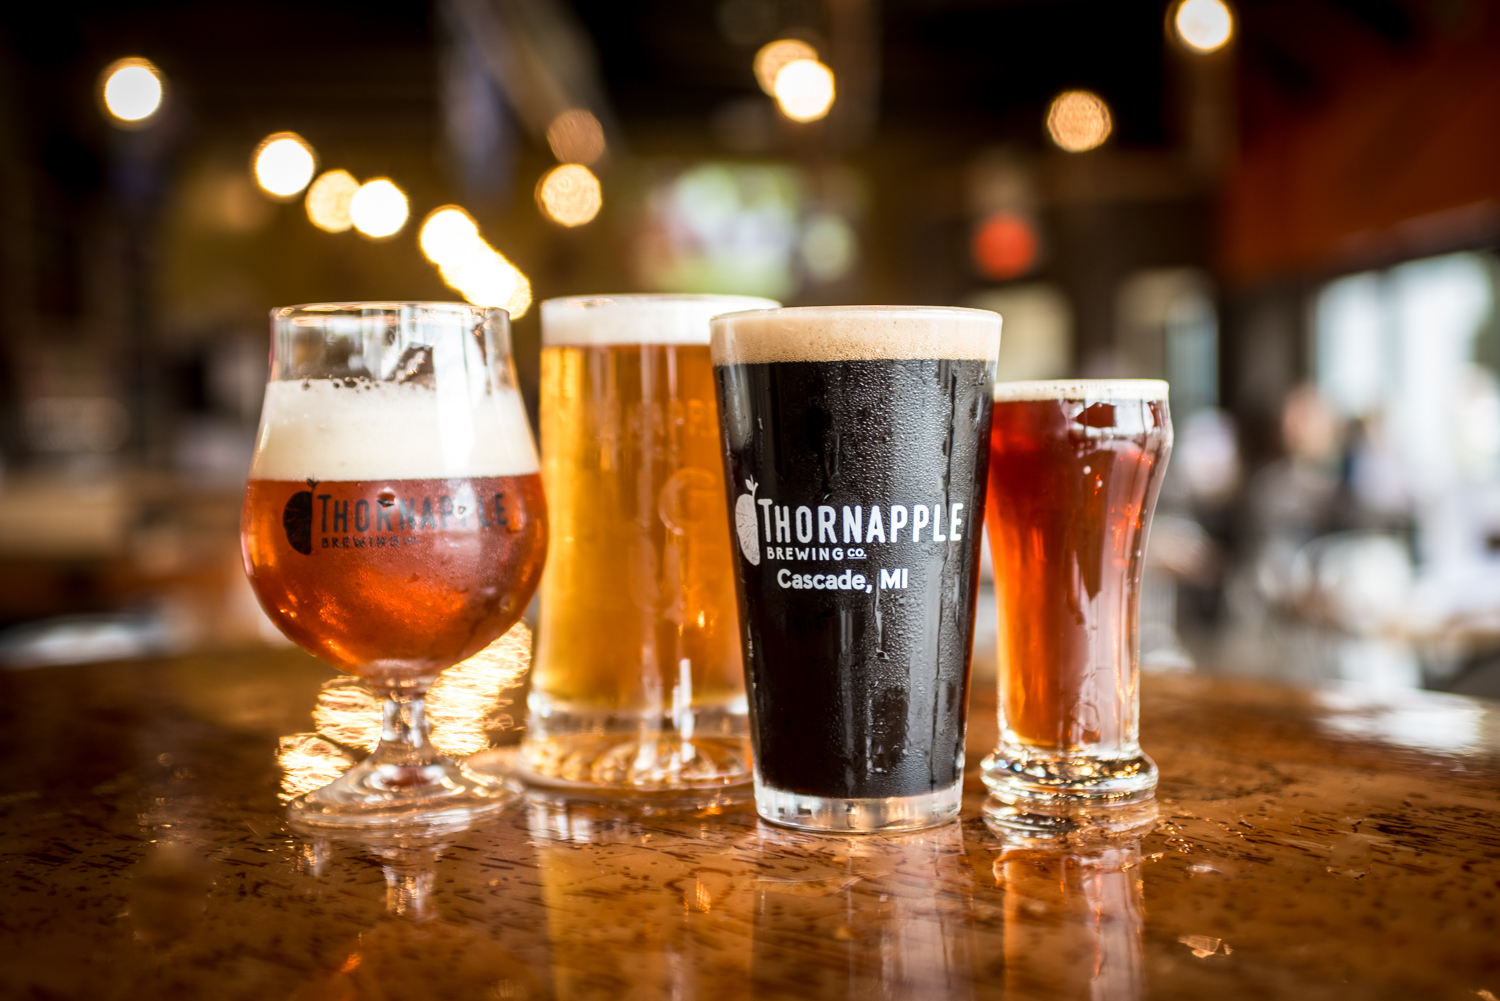 brewery logo design on beer glasses for thornapple brewing co in Grand Rapids, Michigan